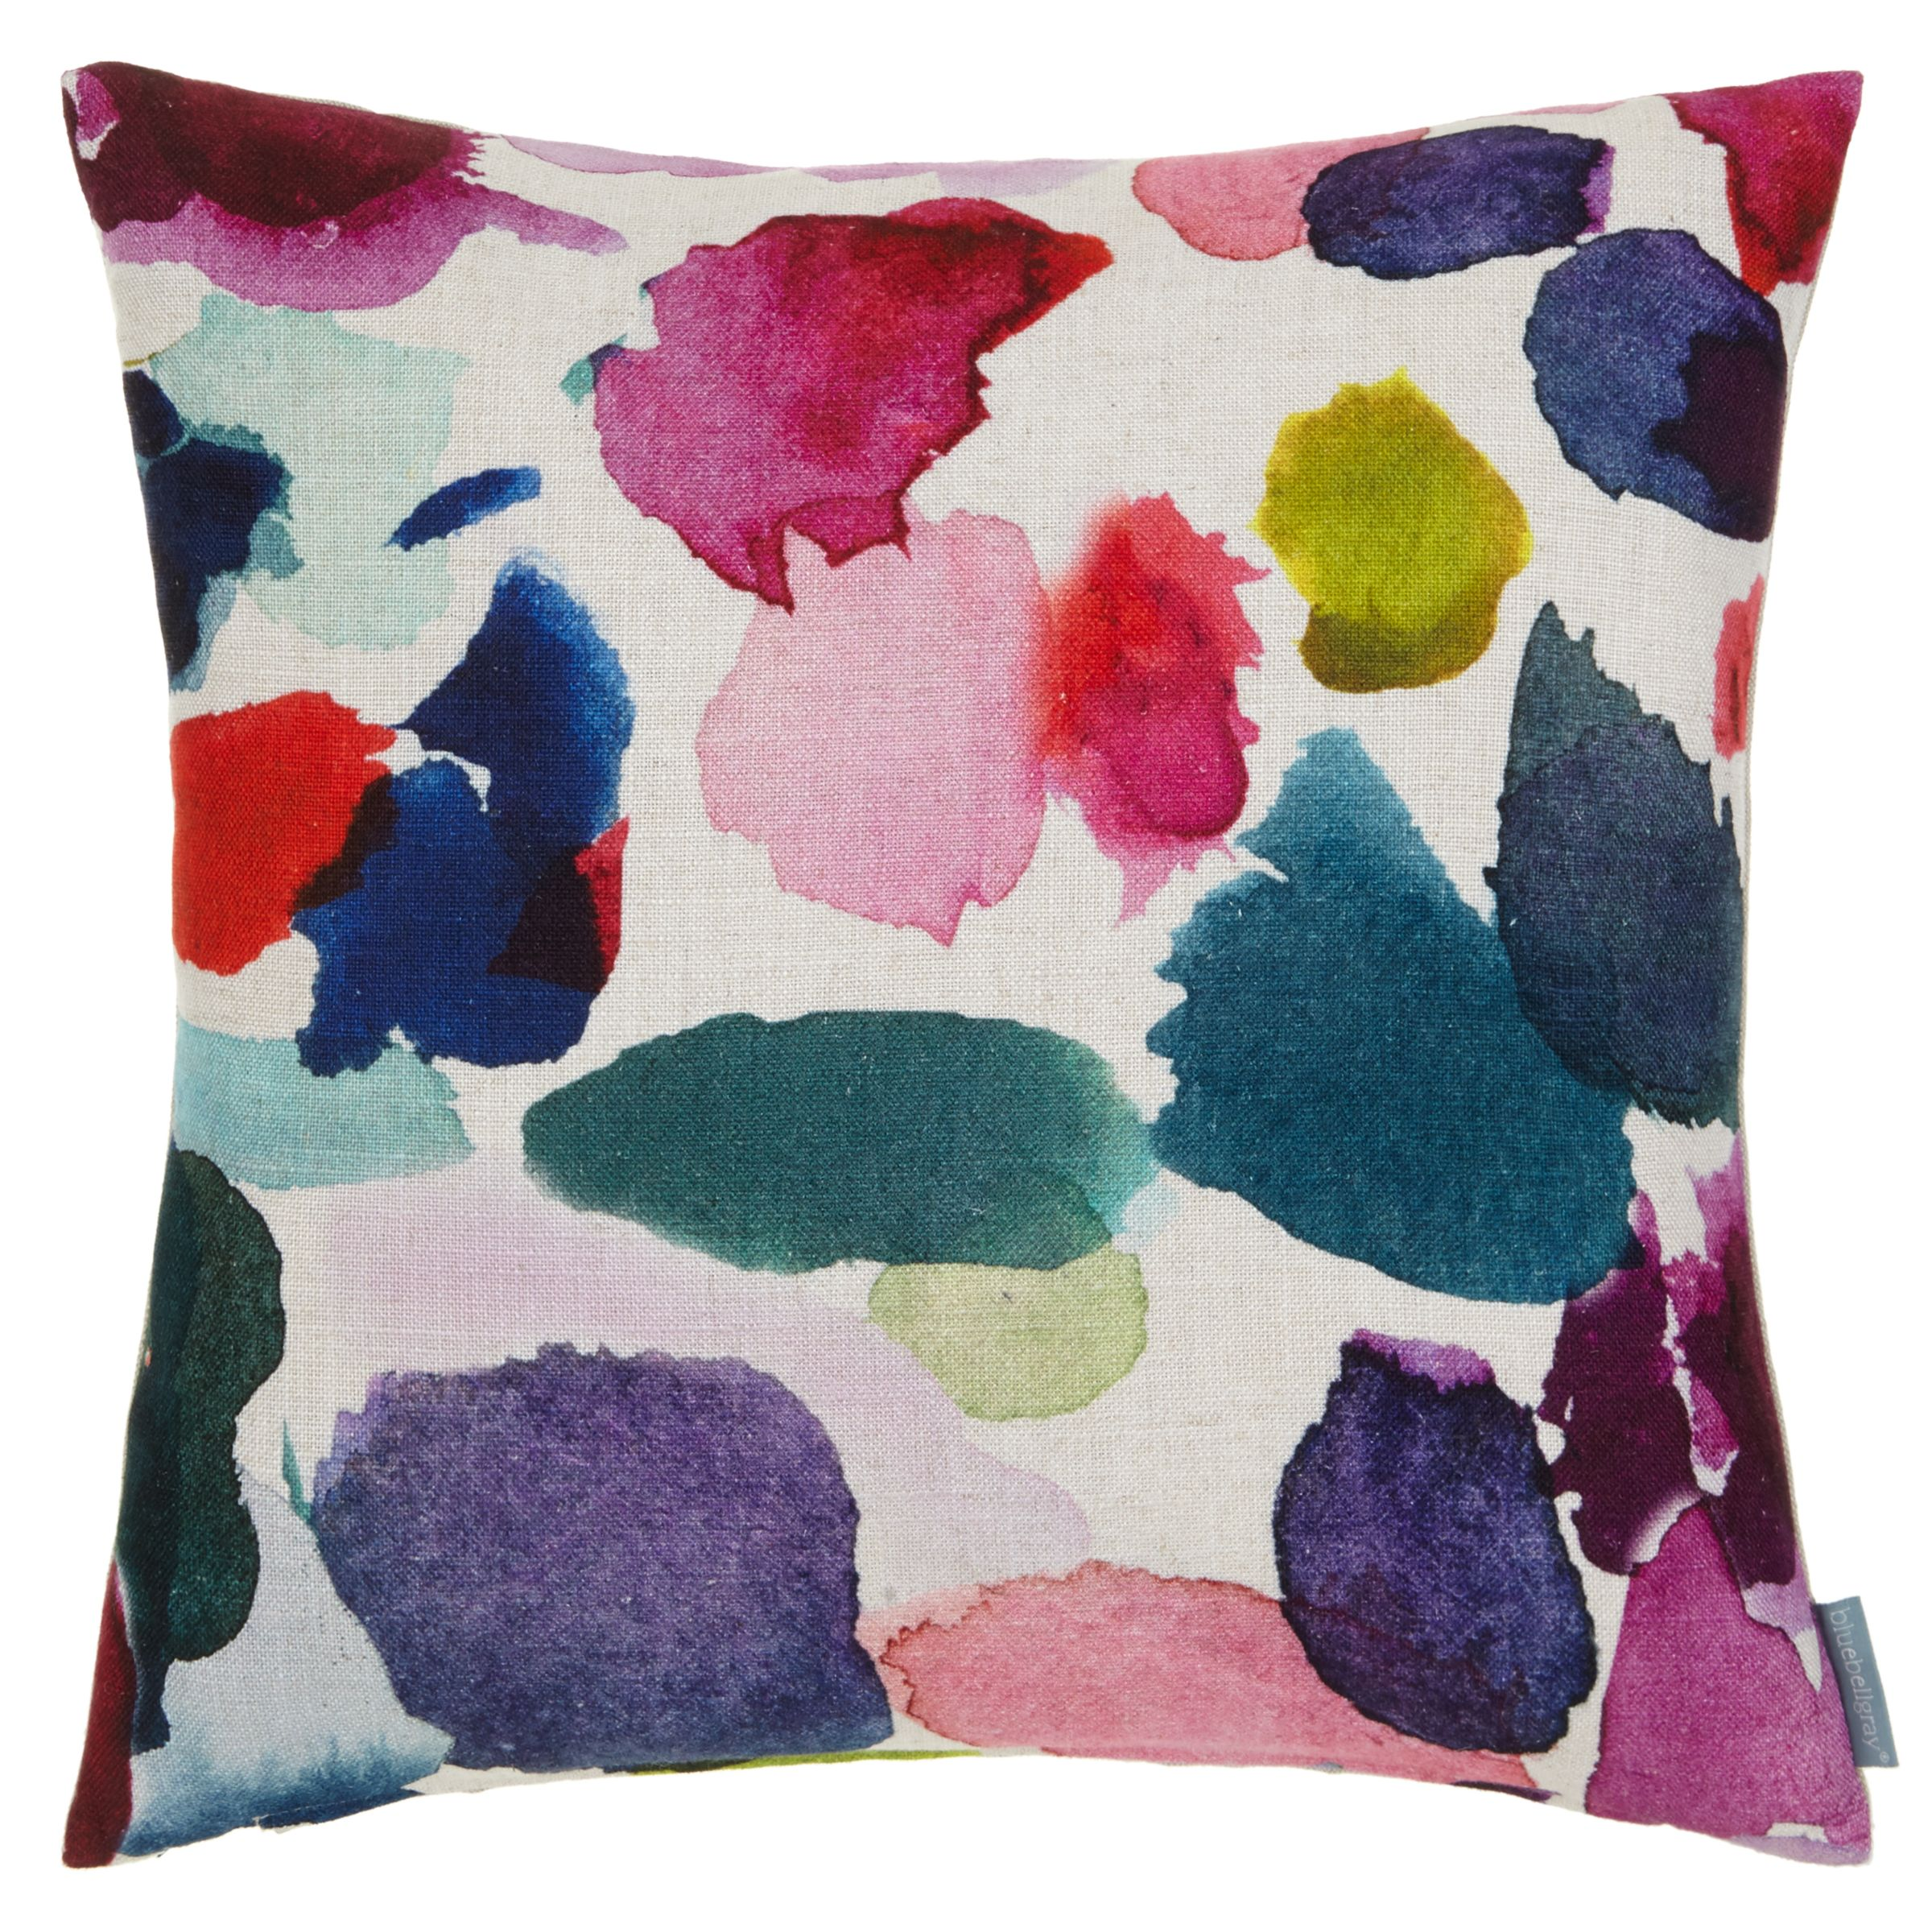 bluebellgray bluebellgray Abstract Cushion, Multi